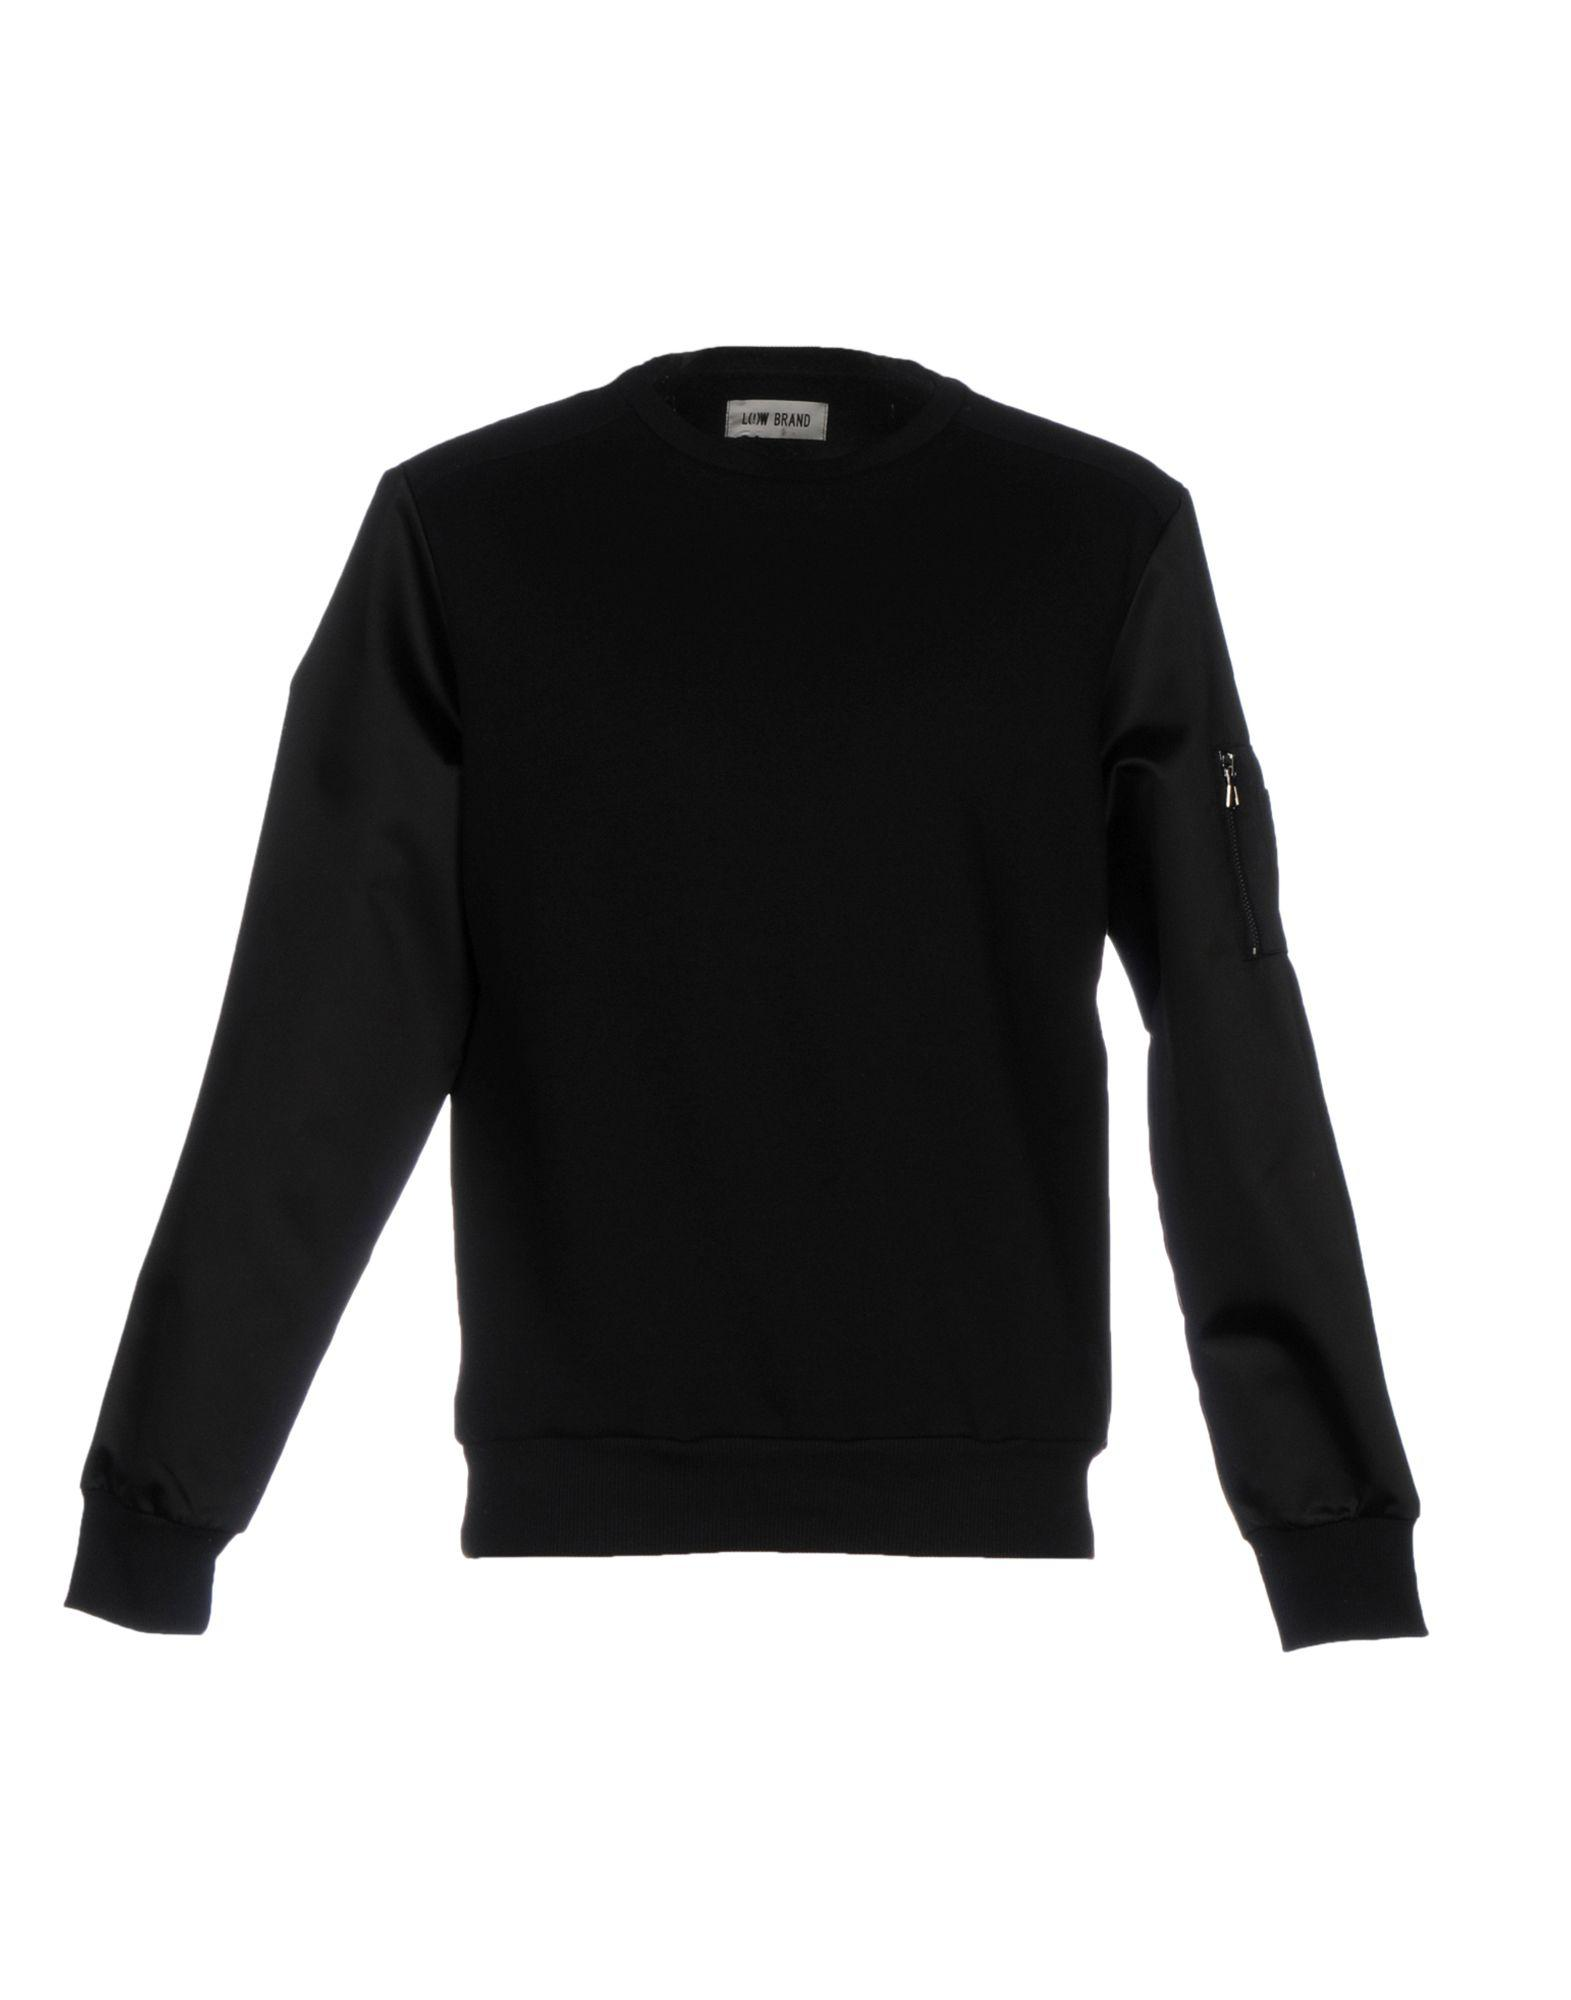 Low Brand Sweatshirts In Black